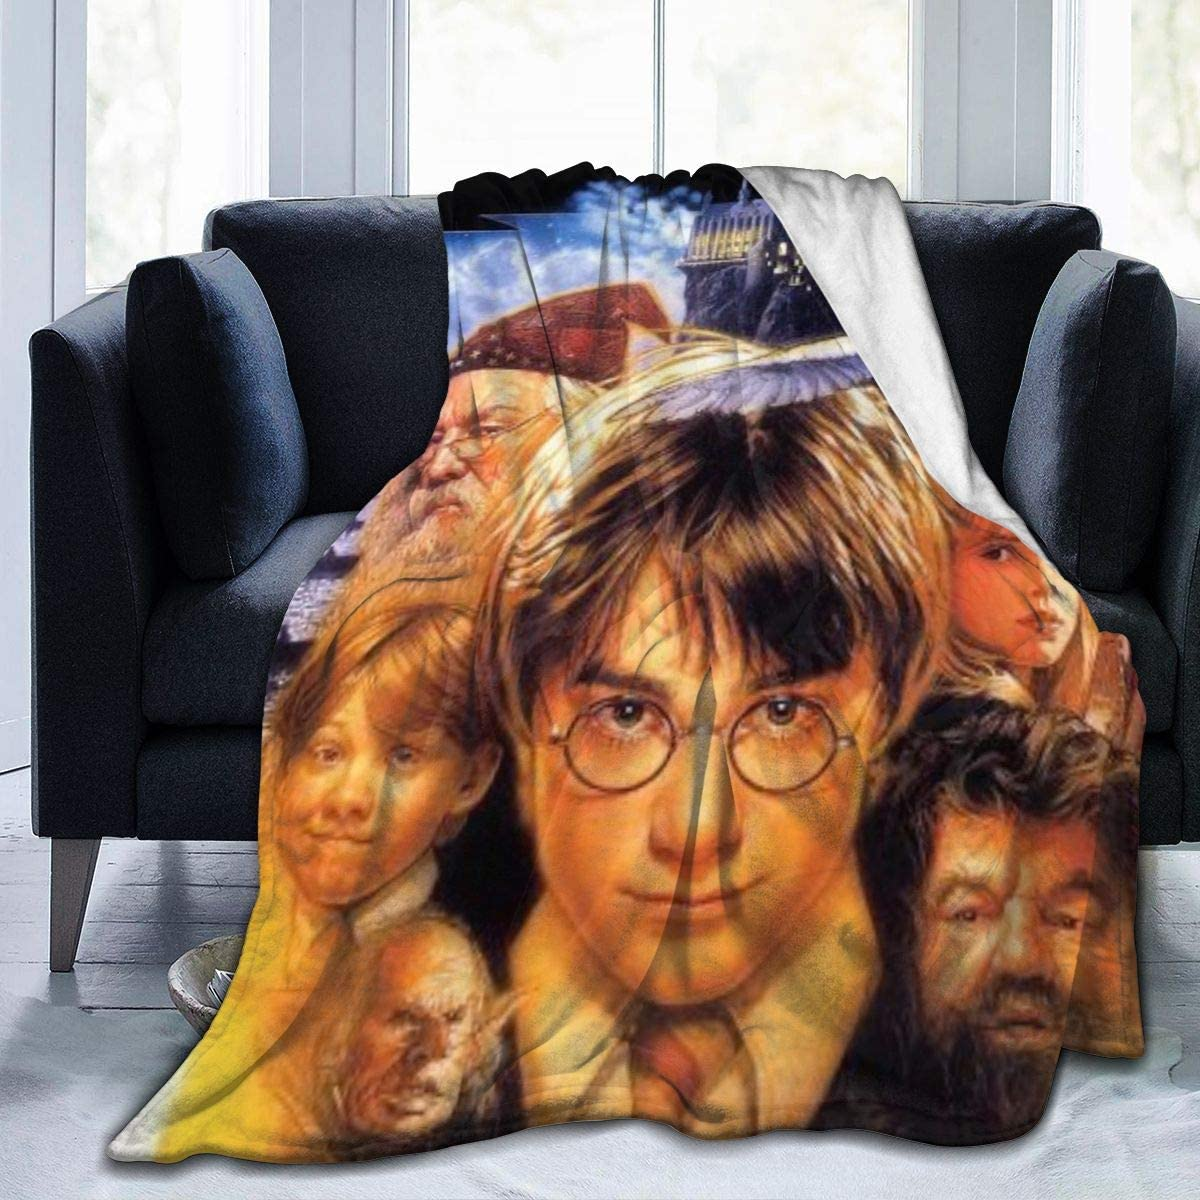 Ha-rry Pot-TER Soft Fuzzy Light Weight 舗 Blanket Bed Warm 期間限定送料無料 Couc for